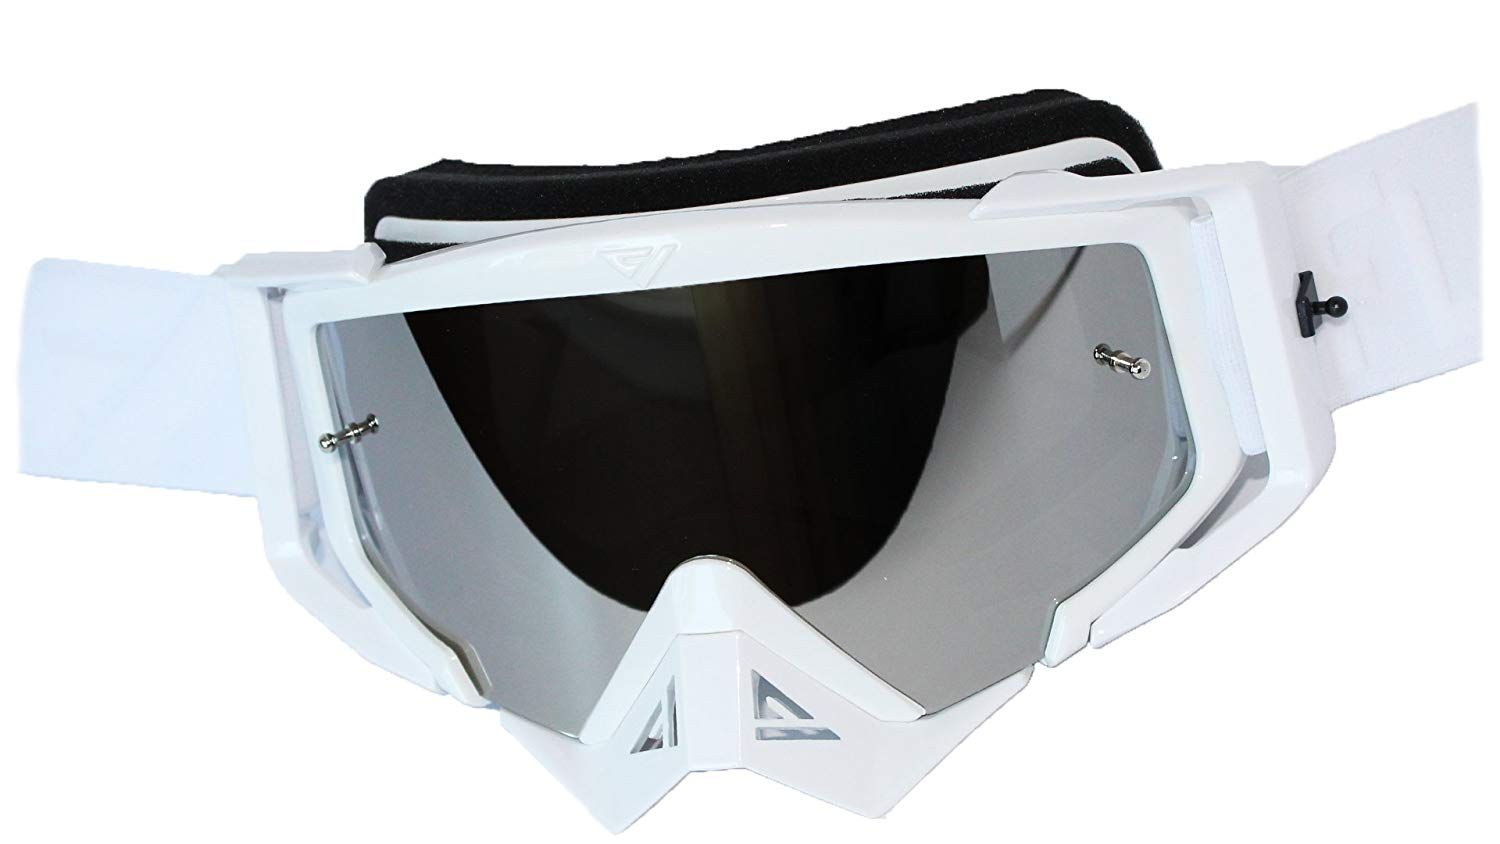 TWO-X Race Cross Goggles Factory Black White Glass Mirrored Green MX Goggles Motocross Enduro Mirror Glass Motorcycle Goggles Anti Scratch MX Protective Goggles